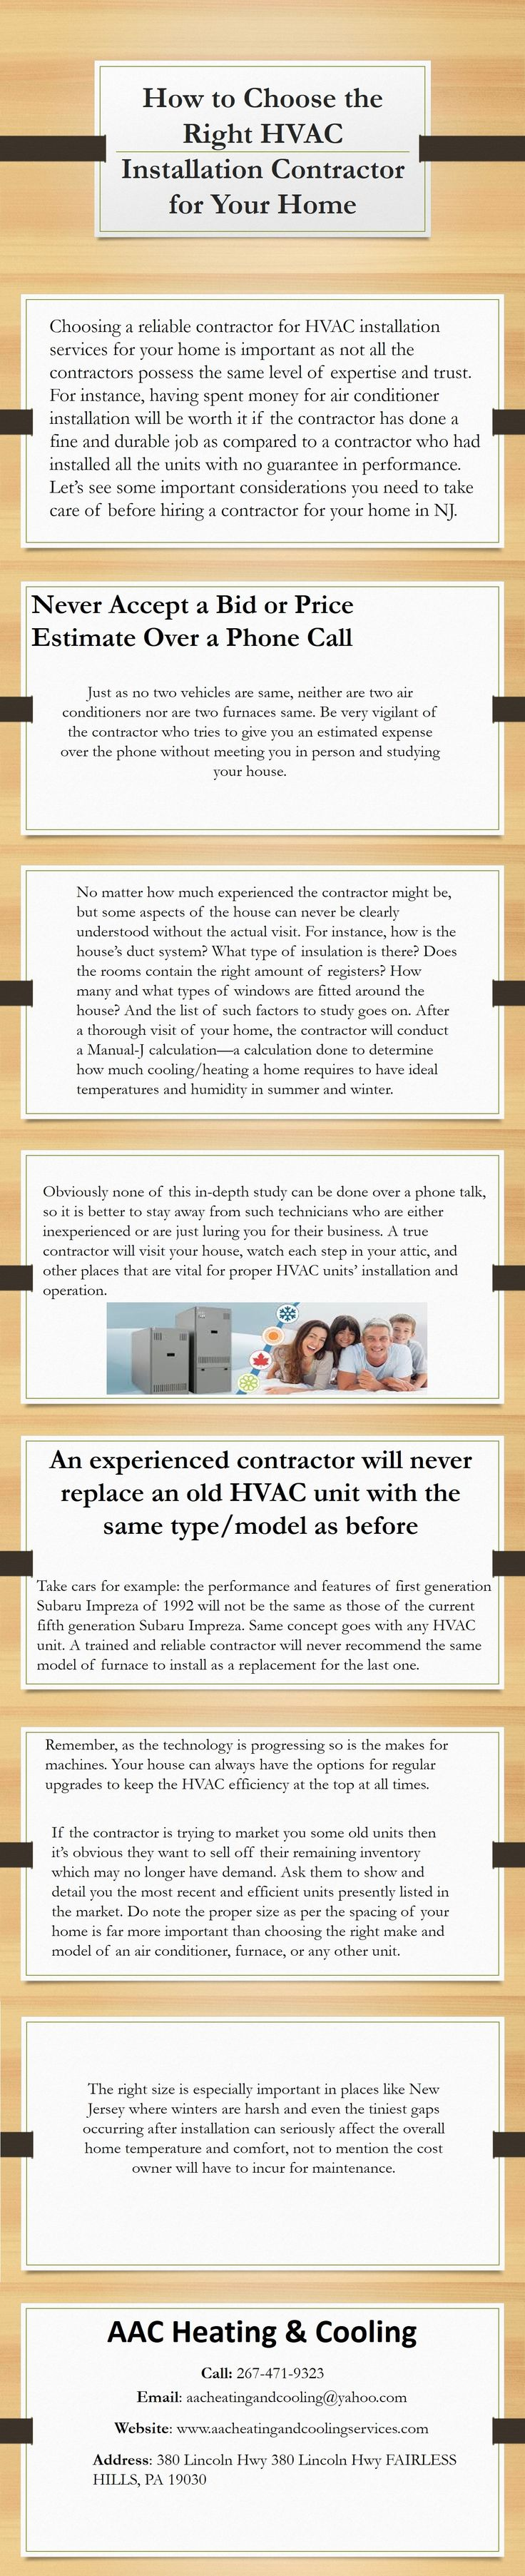 AAC Heating & Cooling is now here to provide the safest and reliable HVAC installation services in NJ!